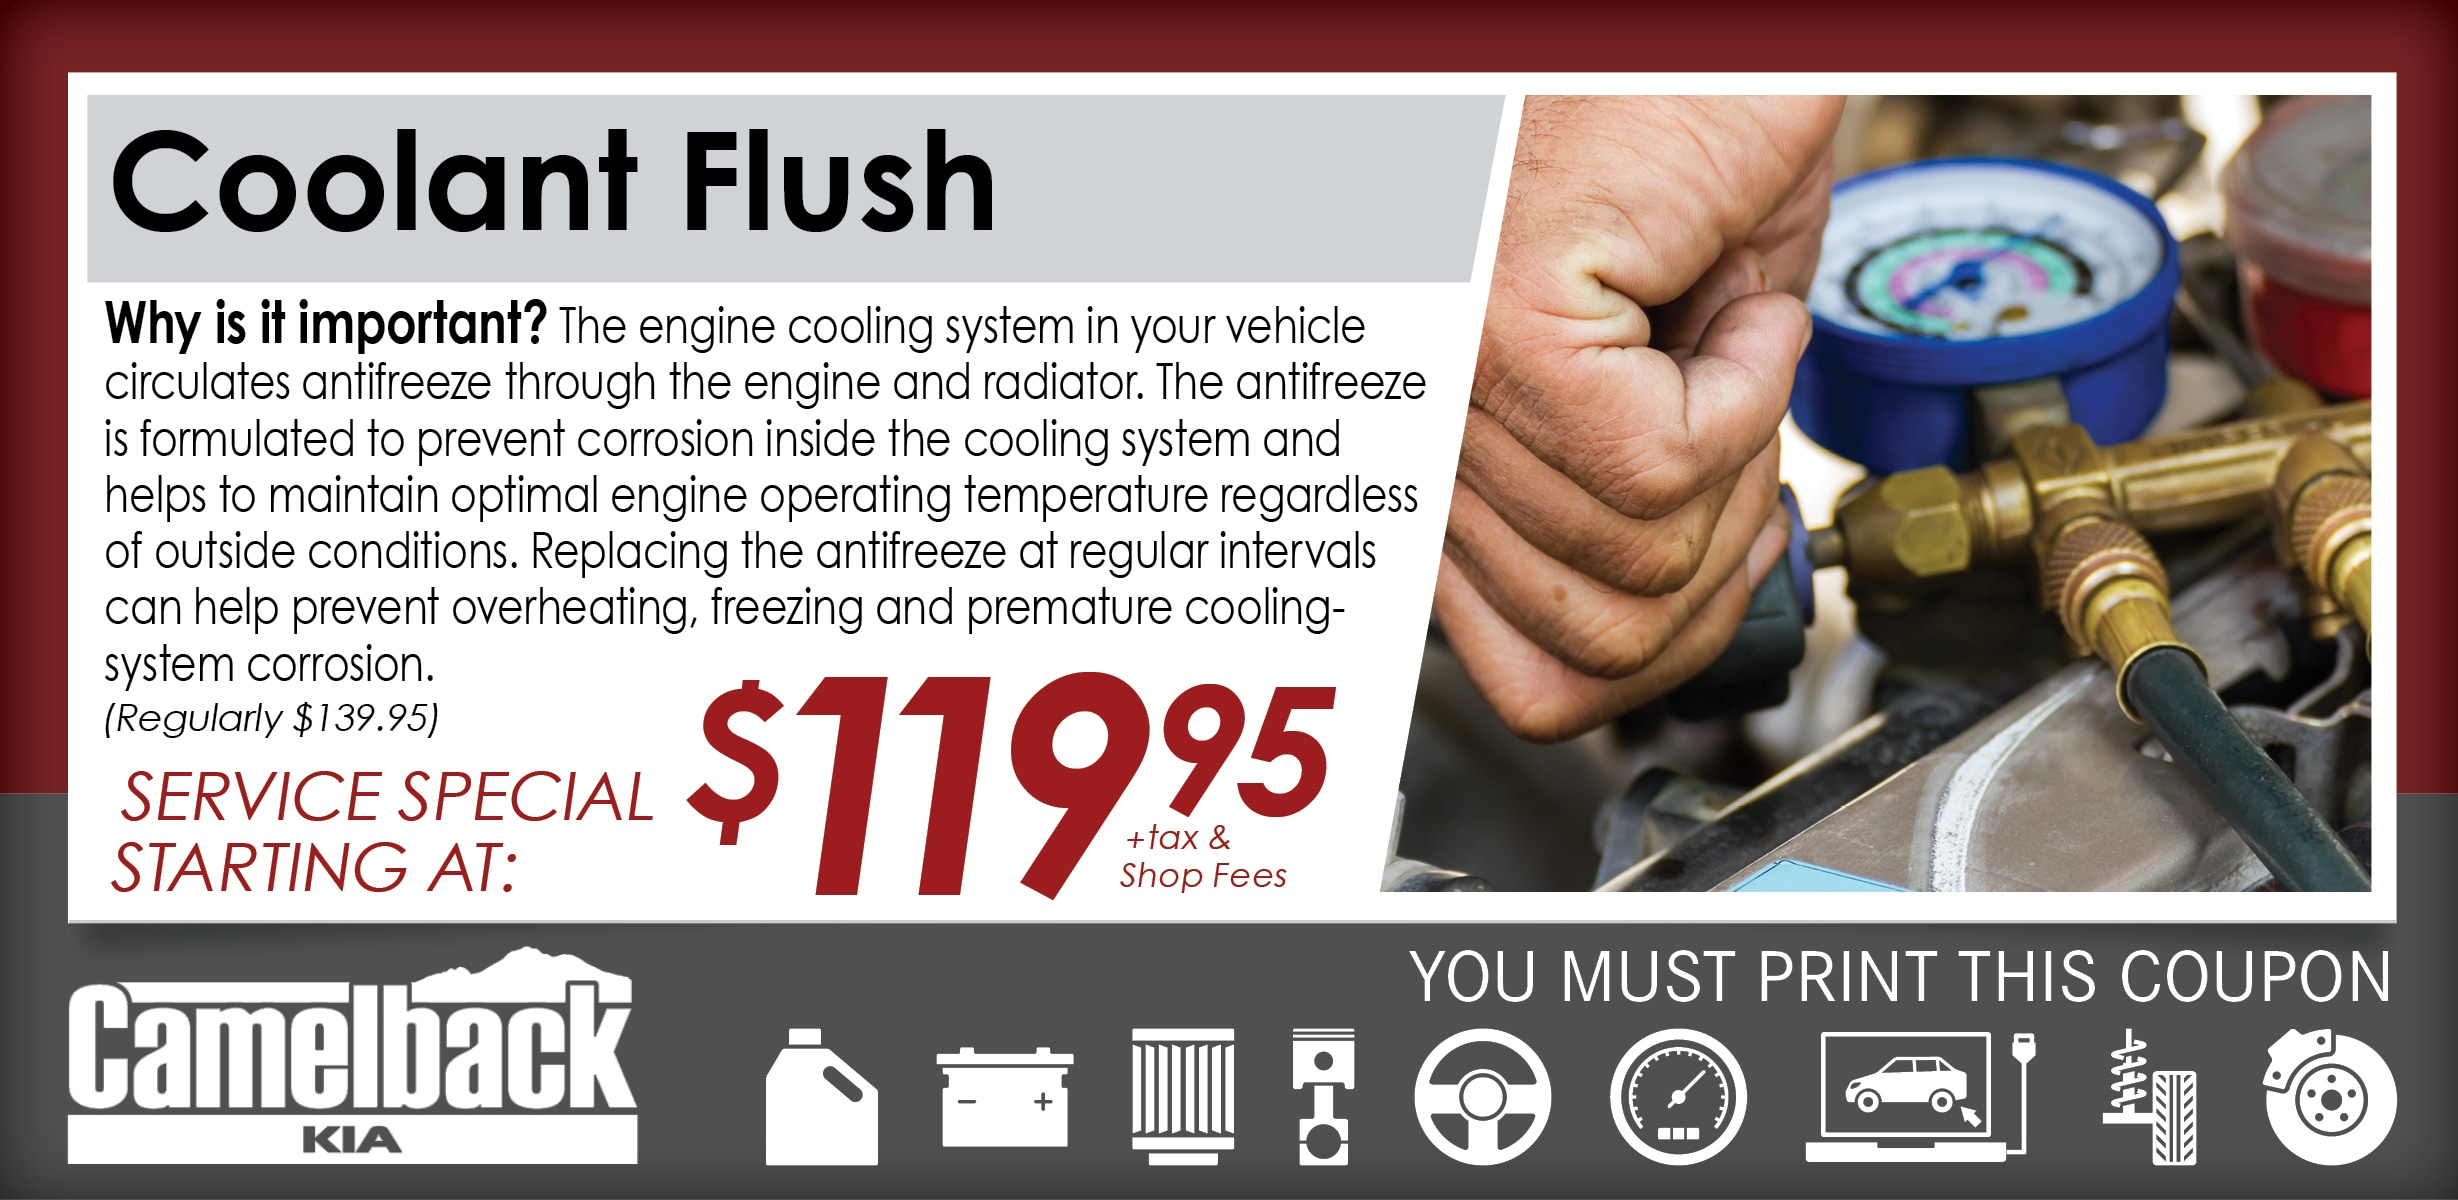 Coolant Flush, Phoenix, AZ Automotive Service Special Special